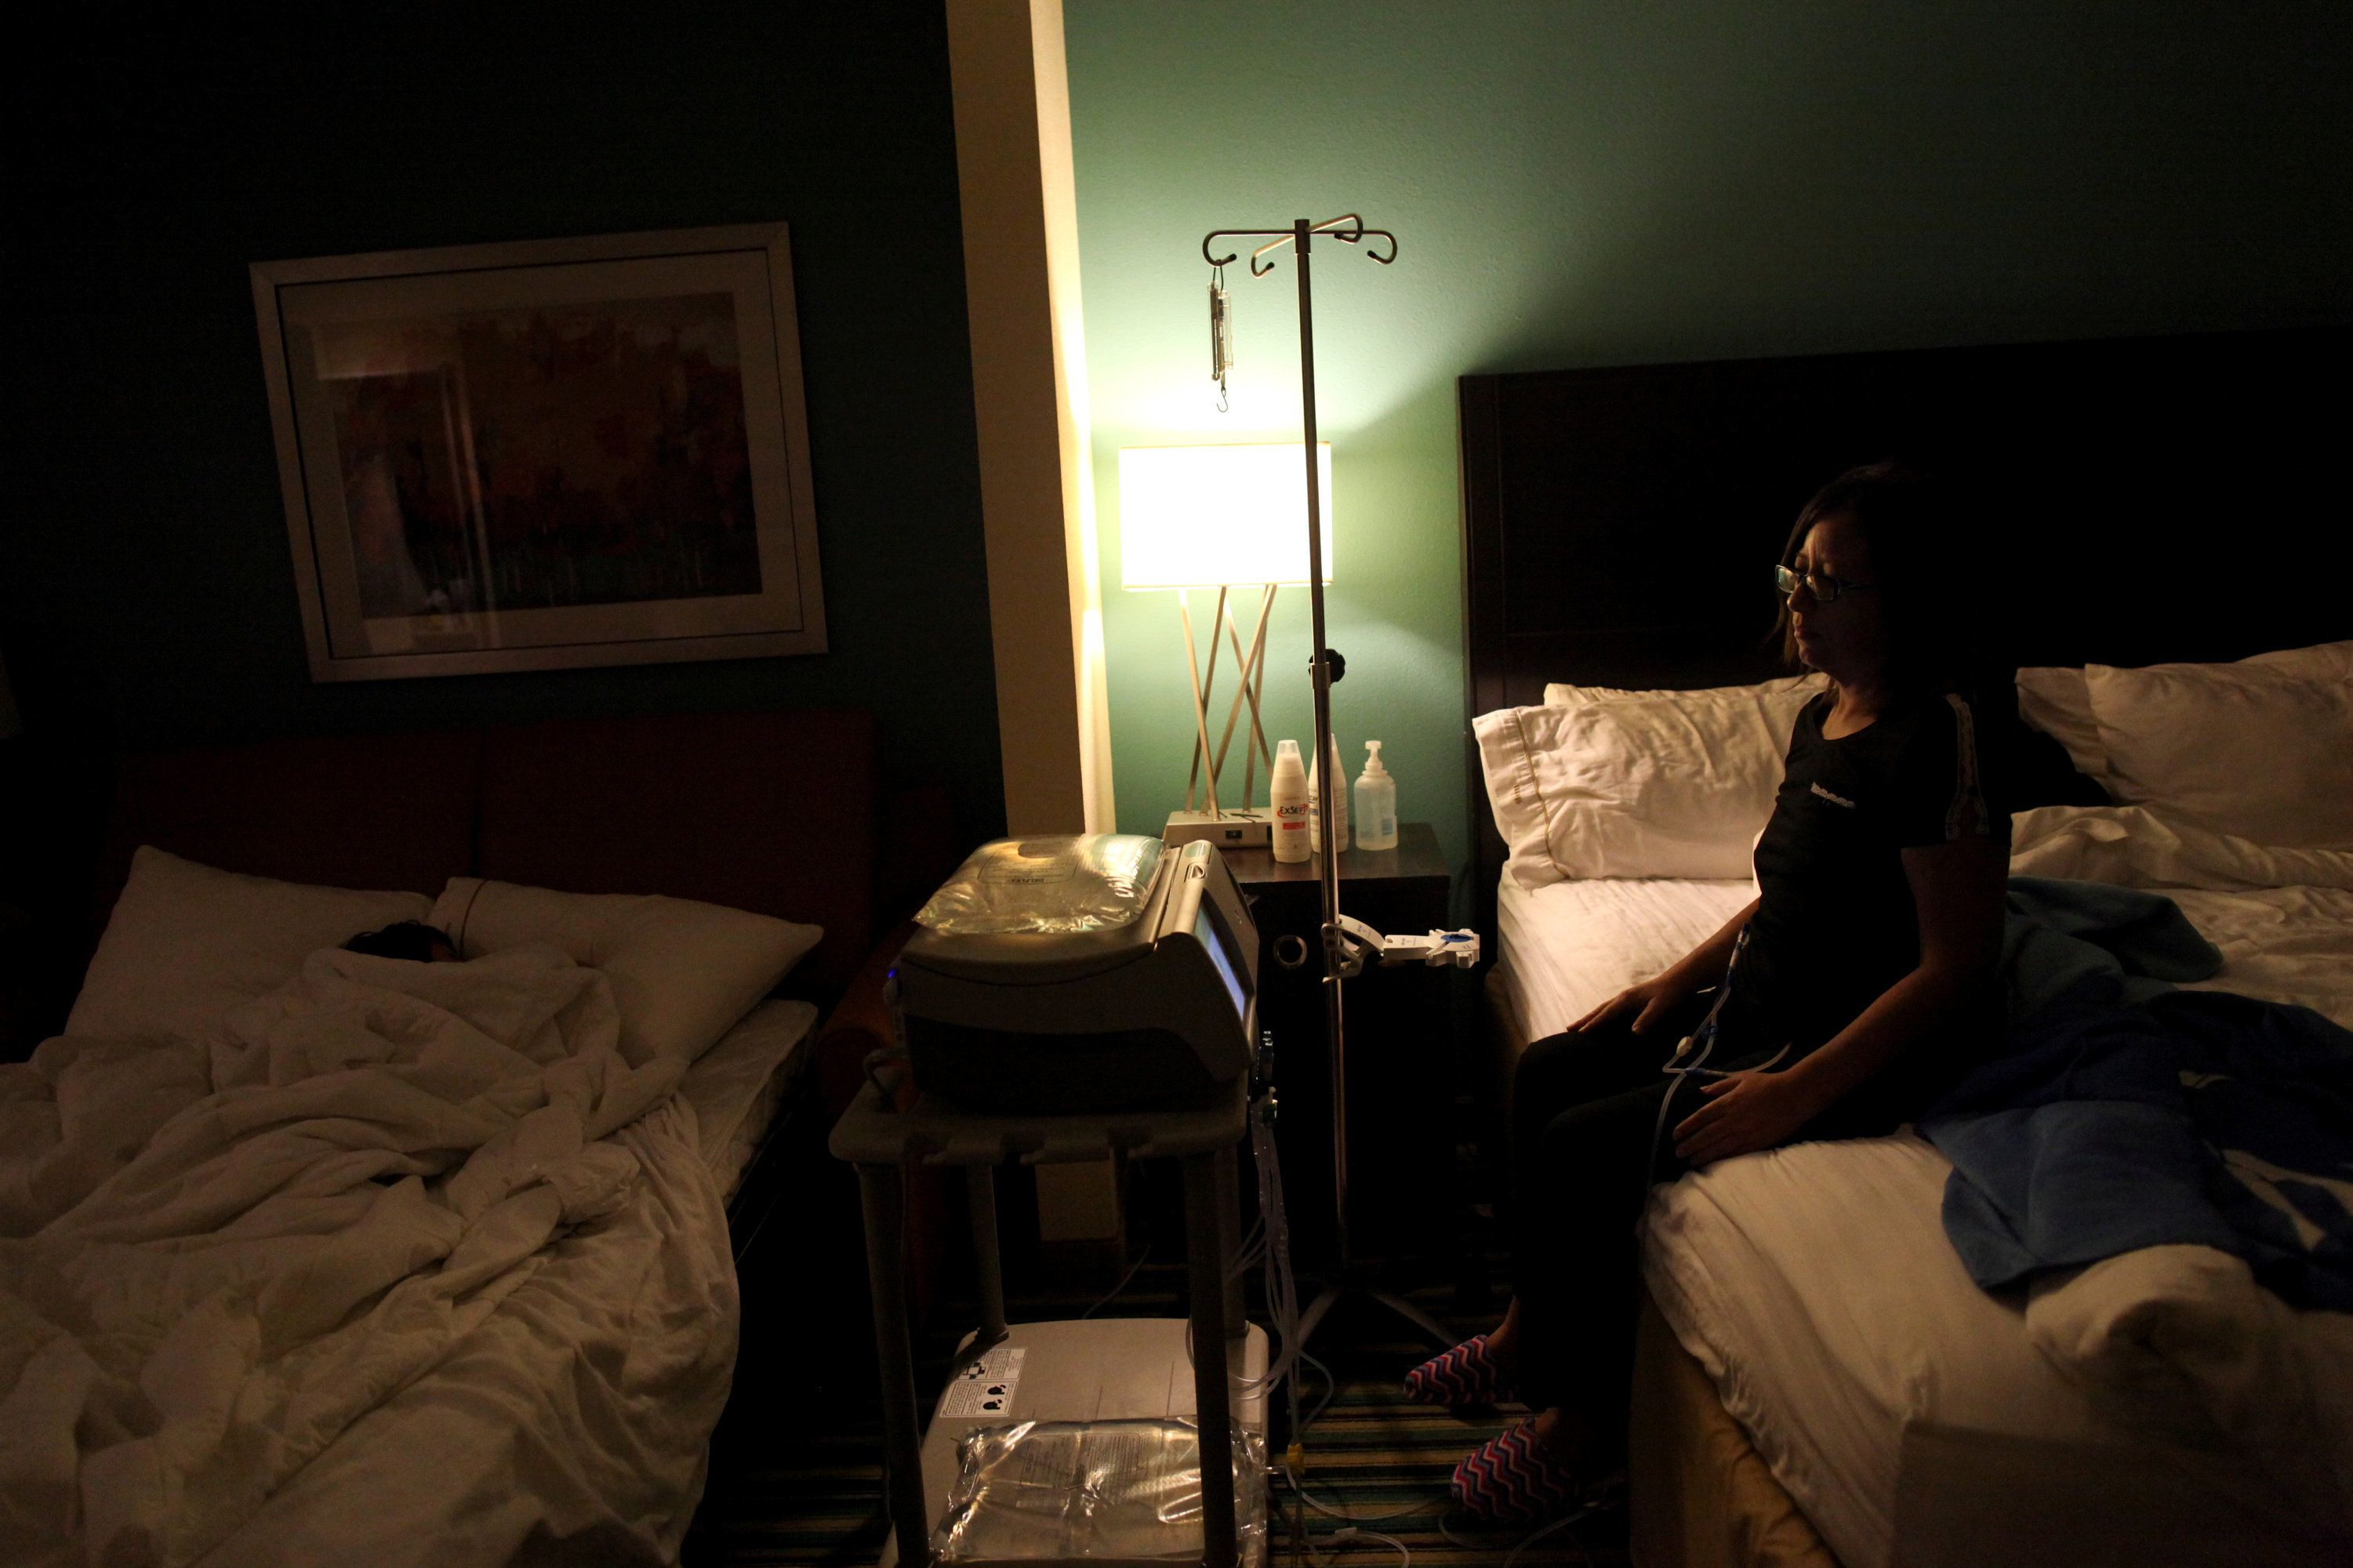 """Puerto Rican Waleska Rivera, 42, looks at her sleeping son Ethan Alejandro Oyola, 9, as she undergoes her dialysis treatment in a hotel room, where she lives with her family, in Orlando, Florida, U.S., December 7, 2017. Waleska left Puerto Rico with her family when Hurricane Maria struck the island in late September. The hotel provides a temporary housing for displaced Puerto Ricans. REUTERS/Alvin Baez      SEARCH """"PUERTO RICO FLORIDA"""" FOR THIS STORY. SEARCH """"WIDER IMAGE"""" FOR ALL STORIES."""